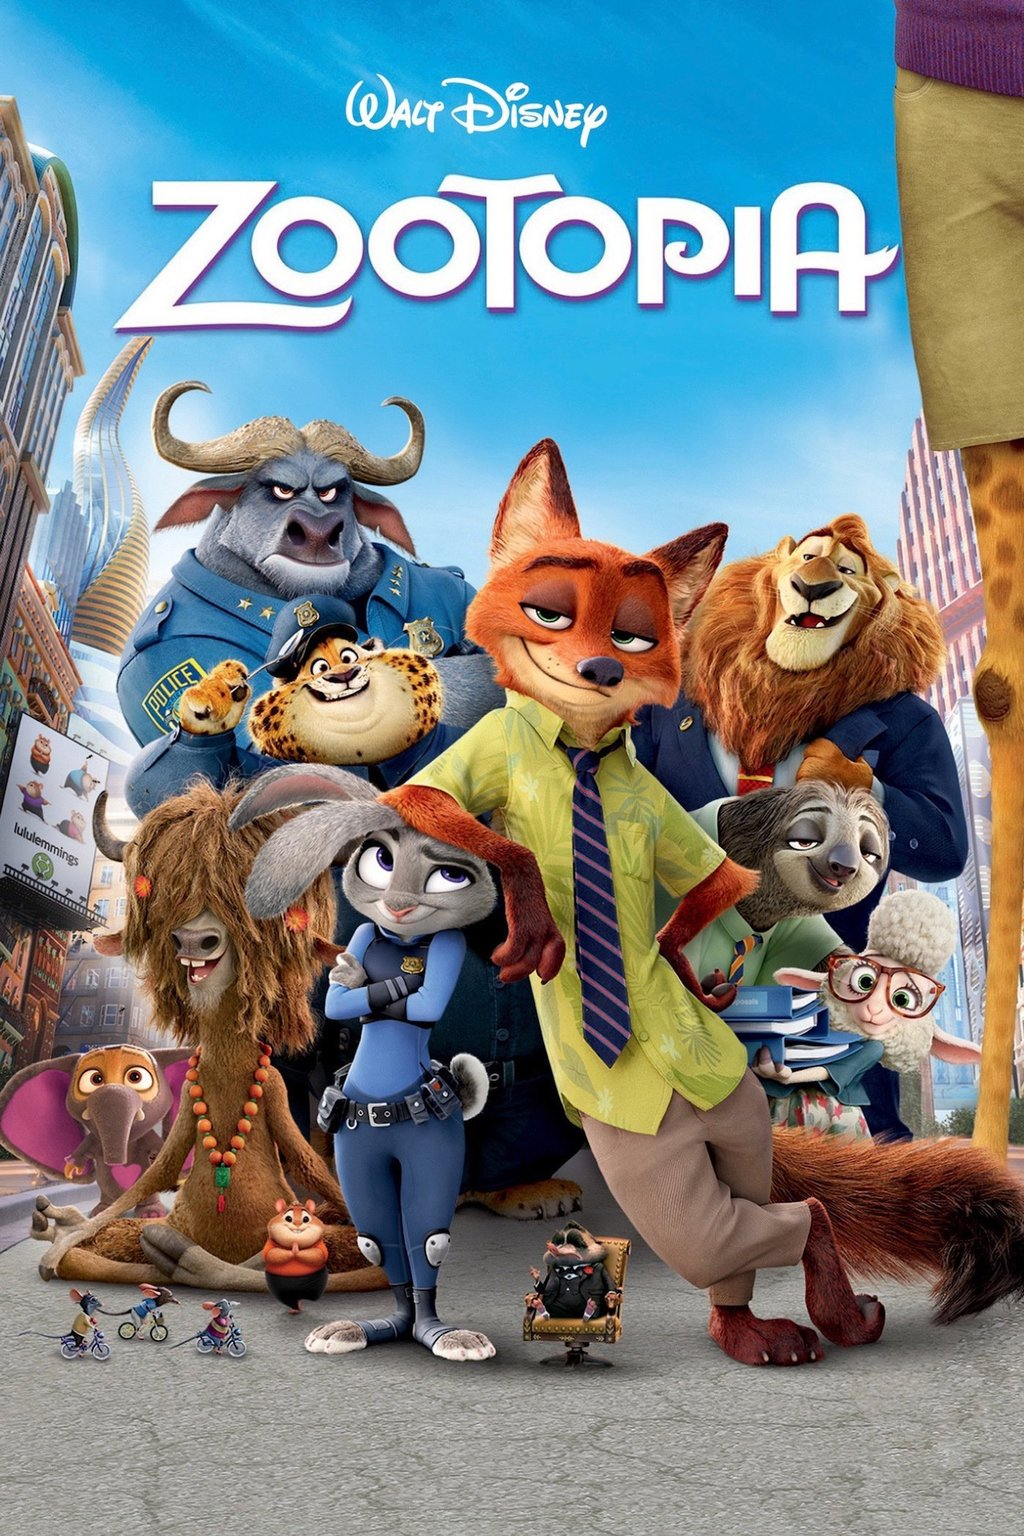 Zootopia Movies in the Park